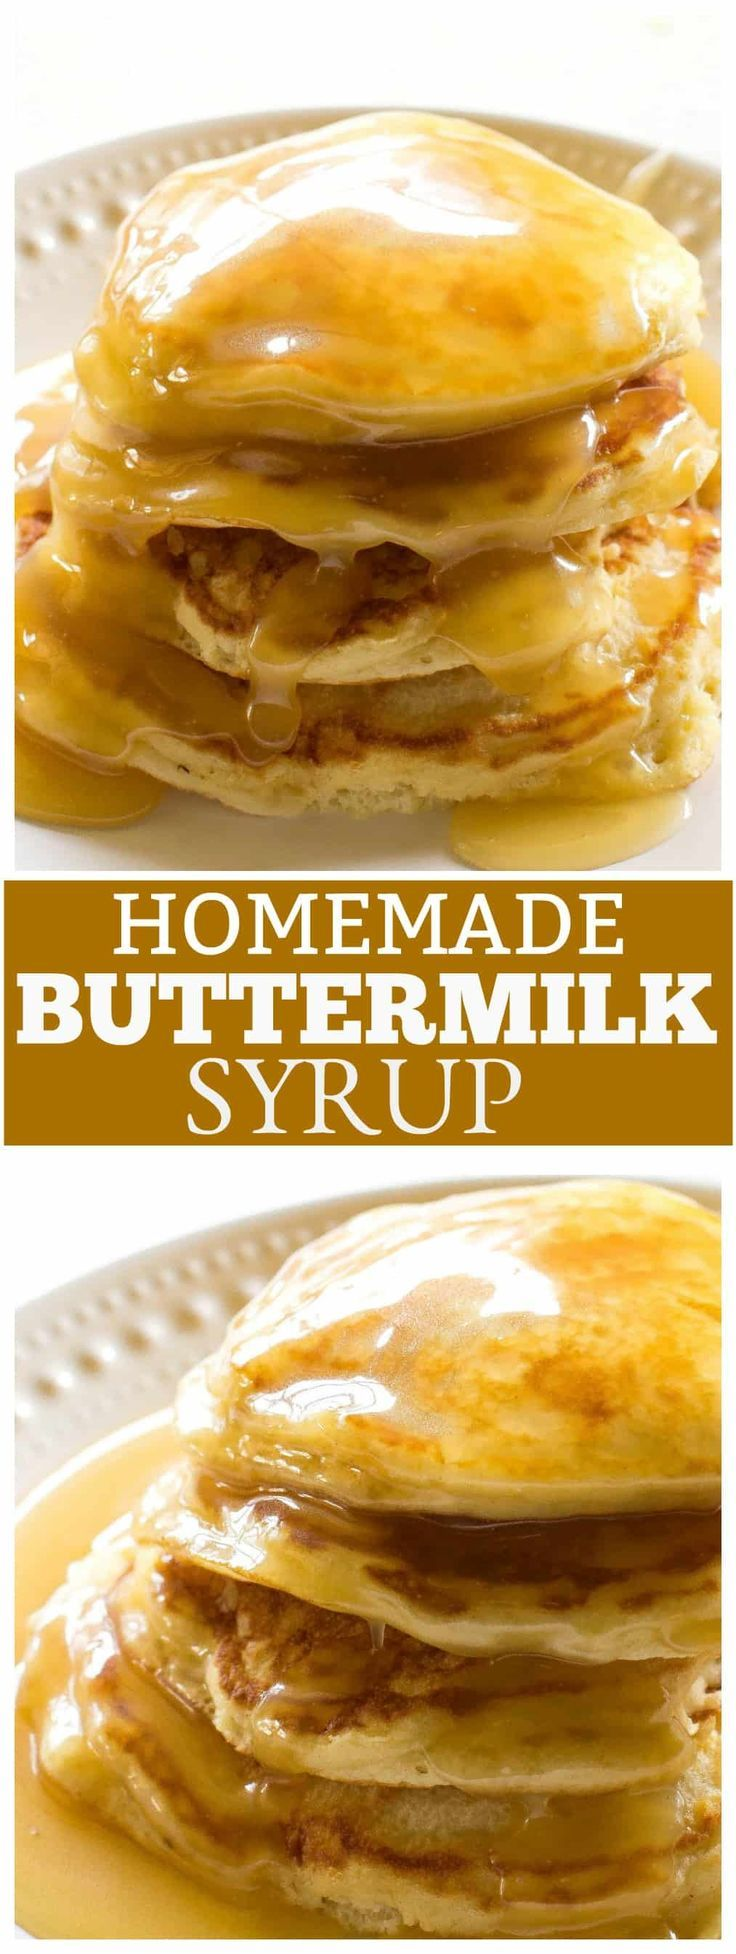 Homemade Buttermilk Syrup The Girl Who Ate Everything Recipe Buttermilk Syrup Homemade Buttermilk Buttermilk